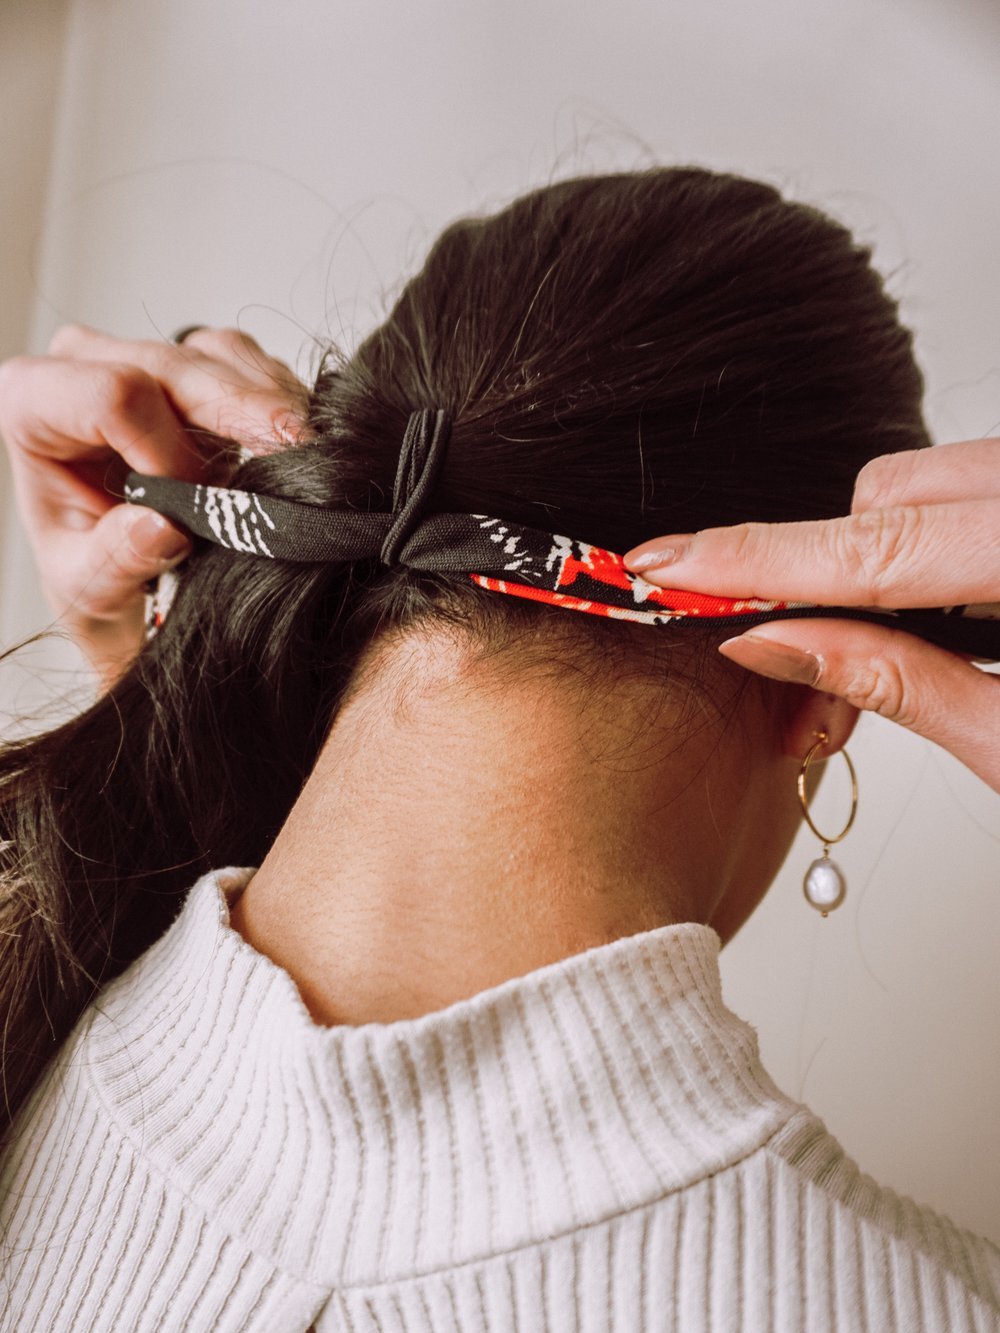 2: Put the scarf through the hair tie - This is the trick! Just let the scarf go through the hair tie, IT MAKES A HUGE DIFFERENCE!